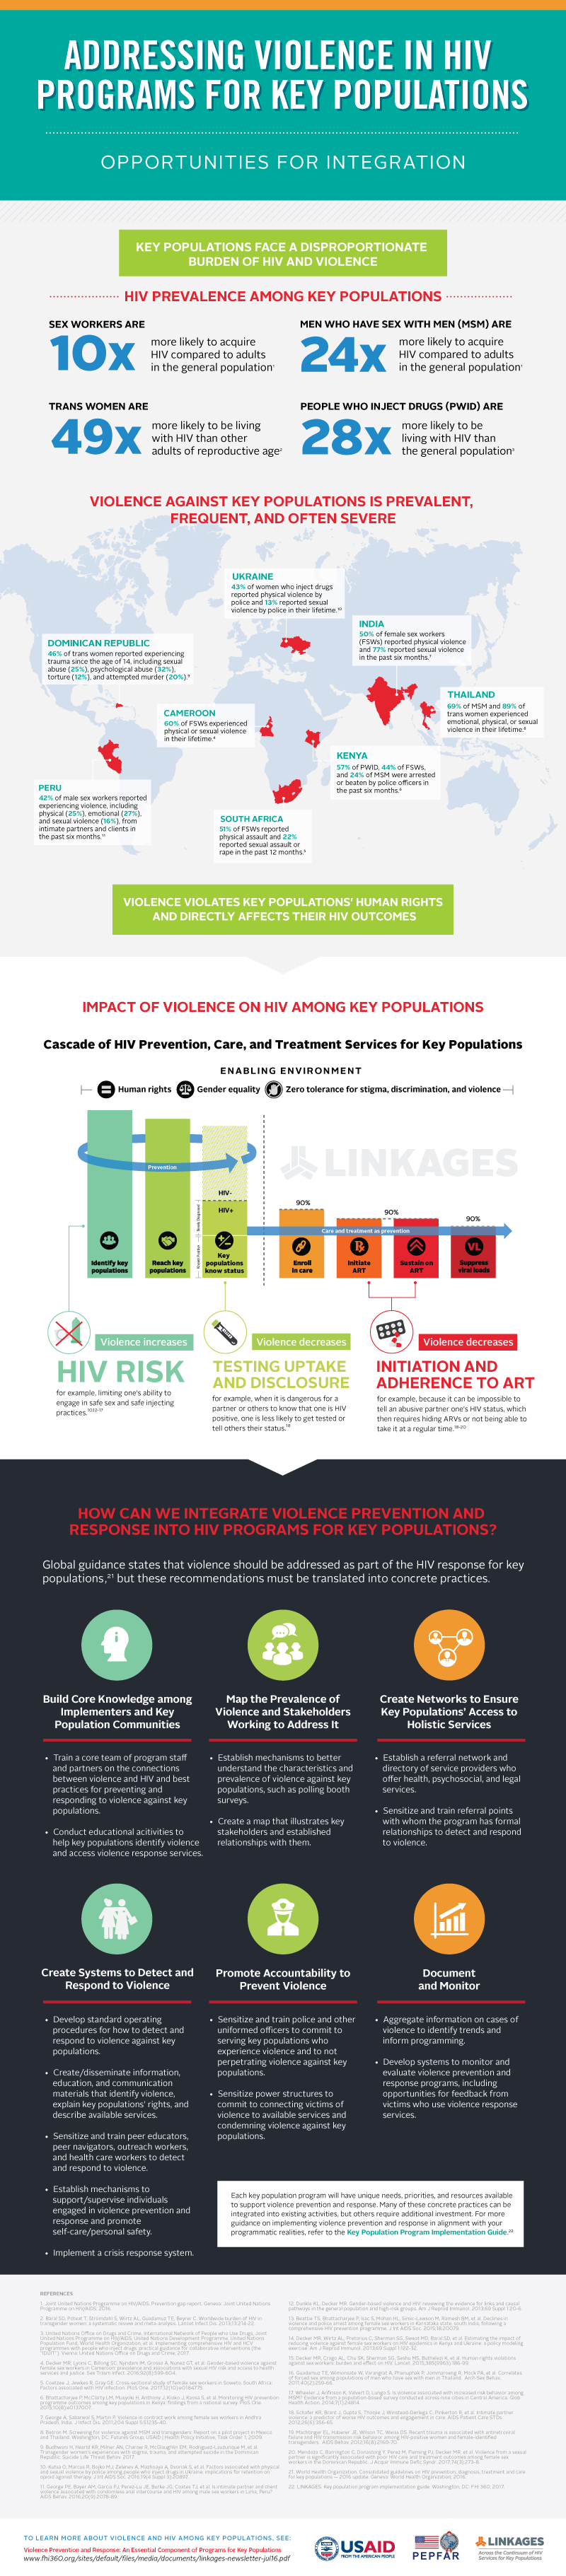 GPV-HIV-infographic-FINAL